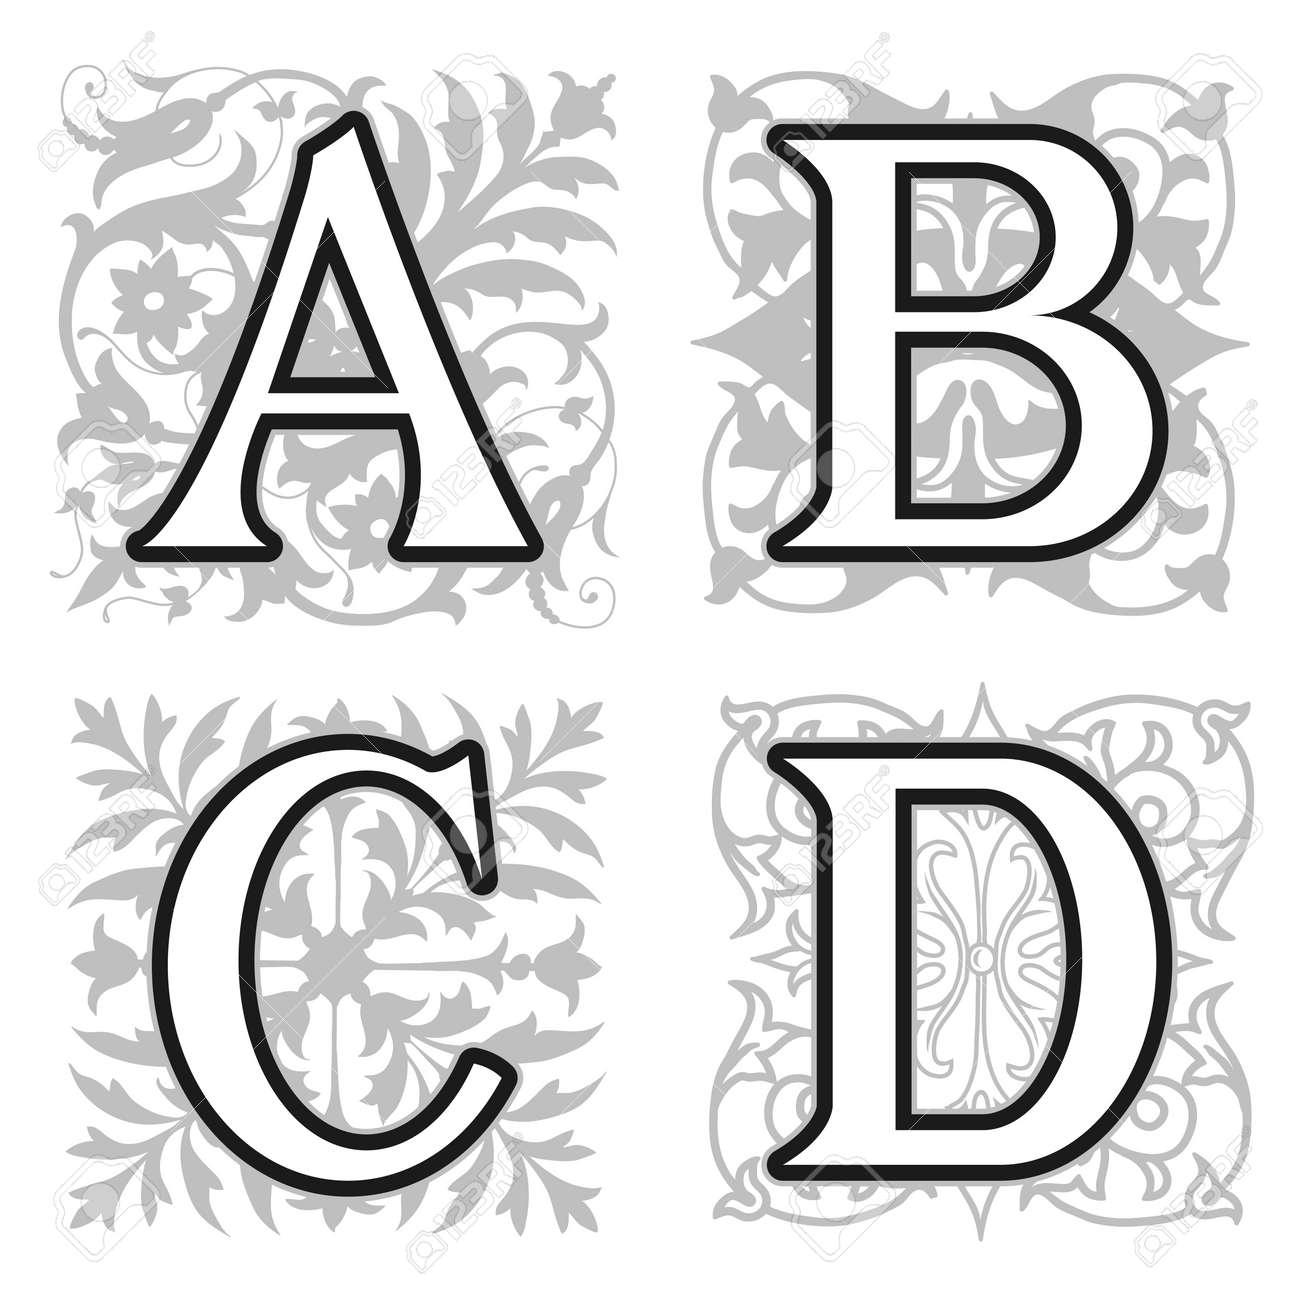 Decorative A B C D Alphabet Letters With Vintage Floral Elements In Different